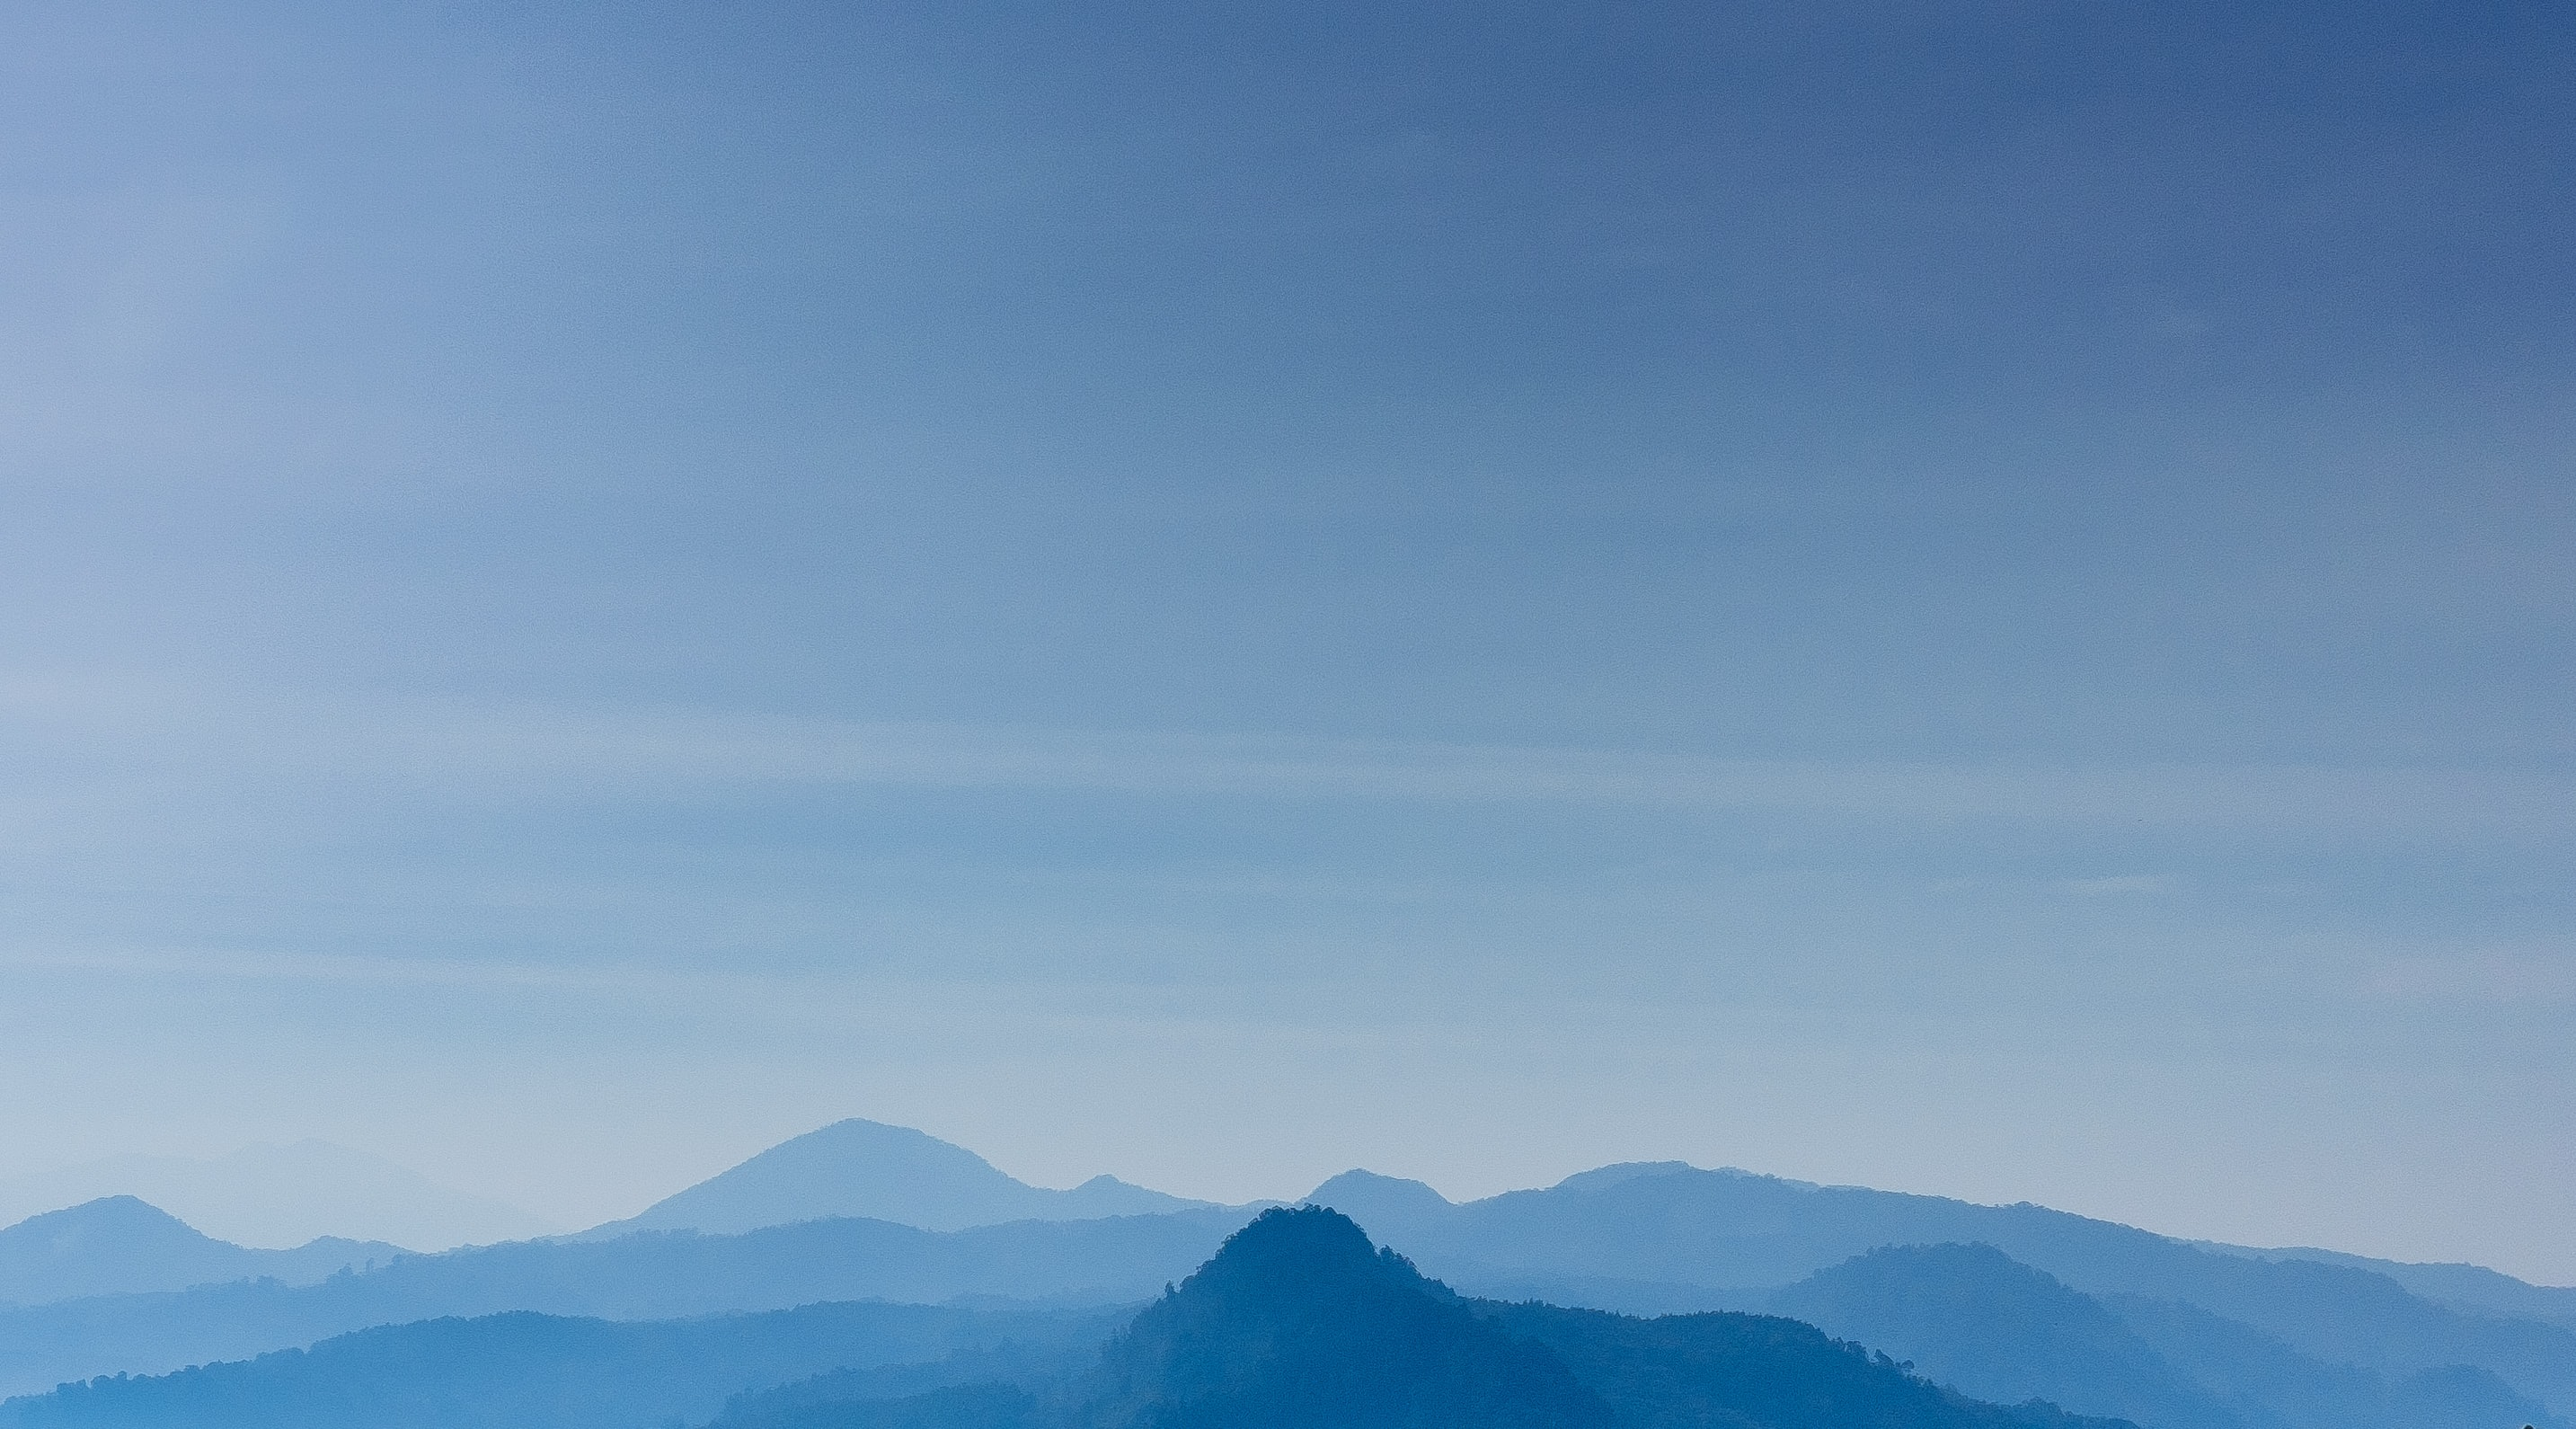 Pale silhouettes of mountain ridges  under a blue sky